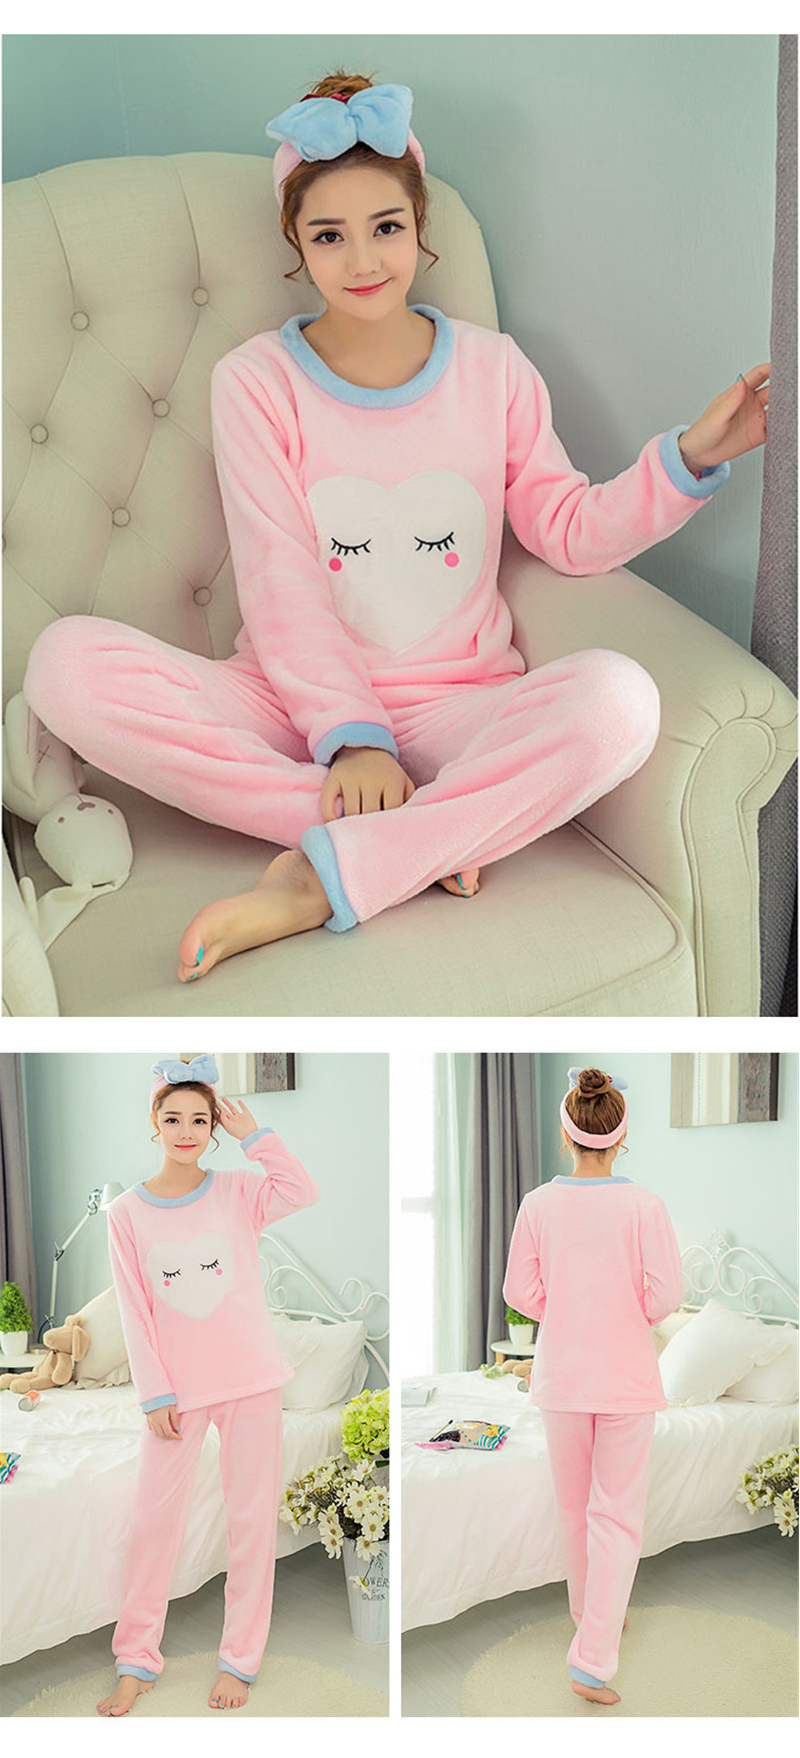 JULY'S SONG Flannel Women Pajamas Sets Autumn Winter Pajamas Cartoon Thick Warm Women Sleepwear Cute Animal Female Homewear 25